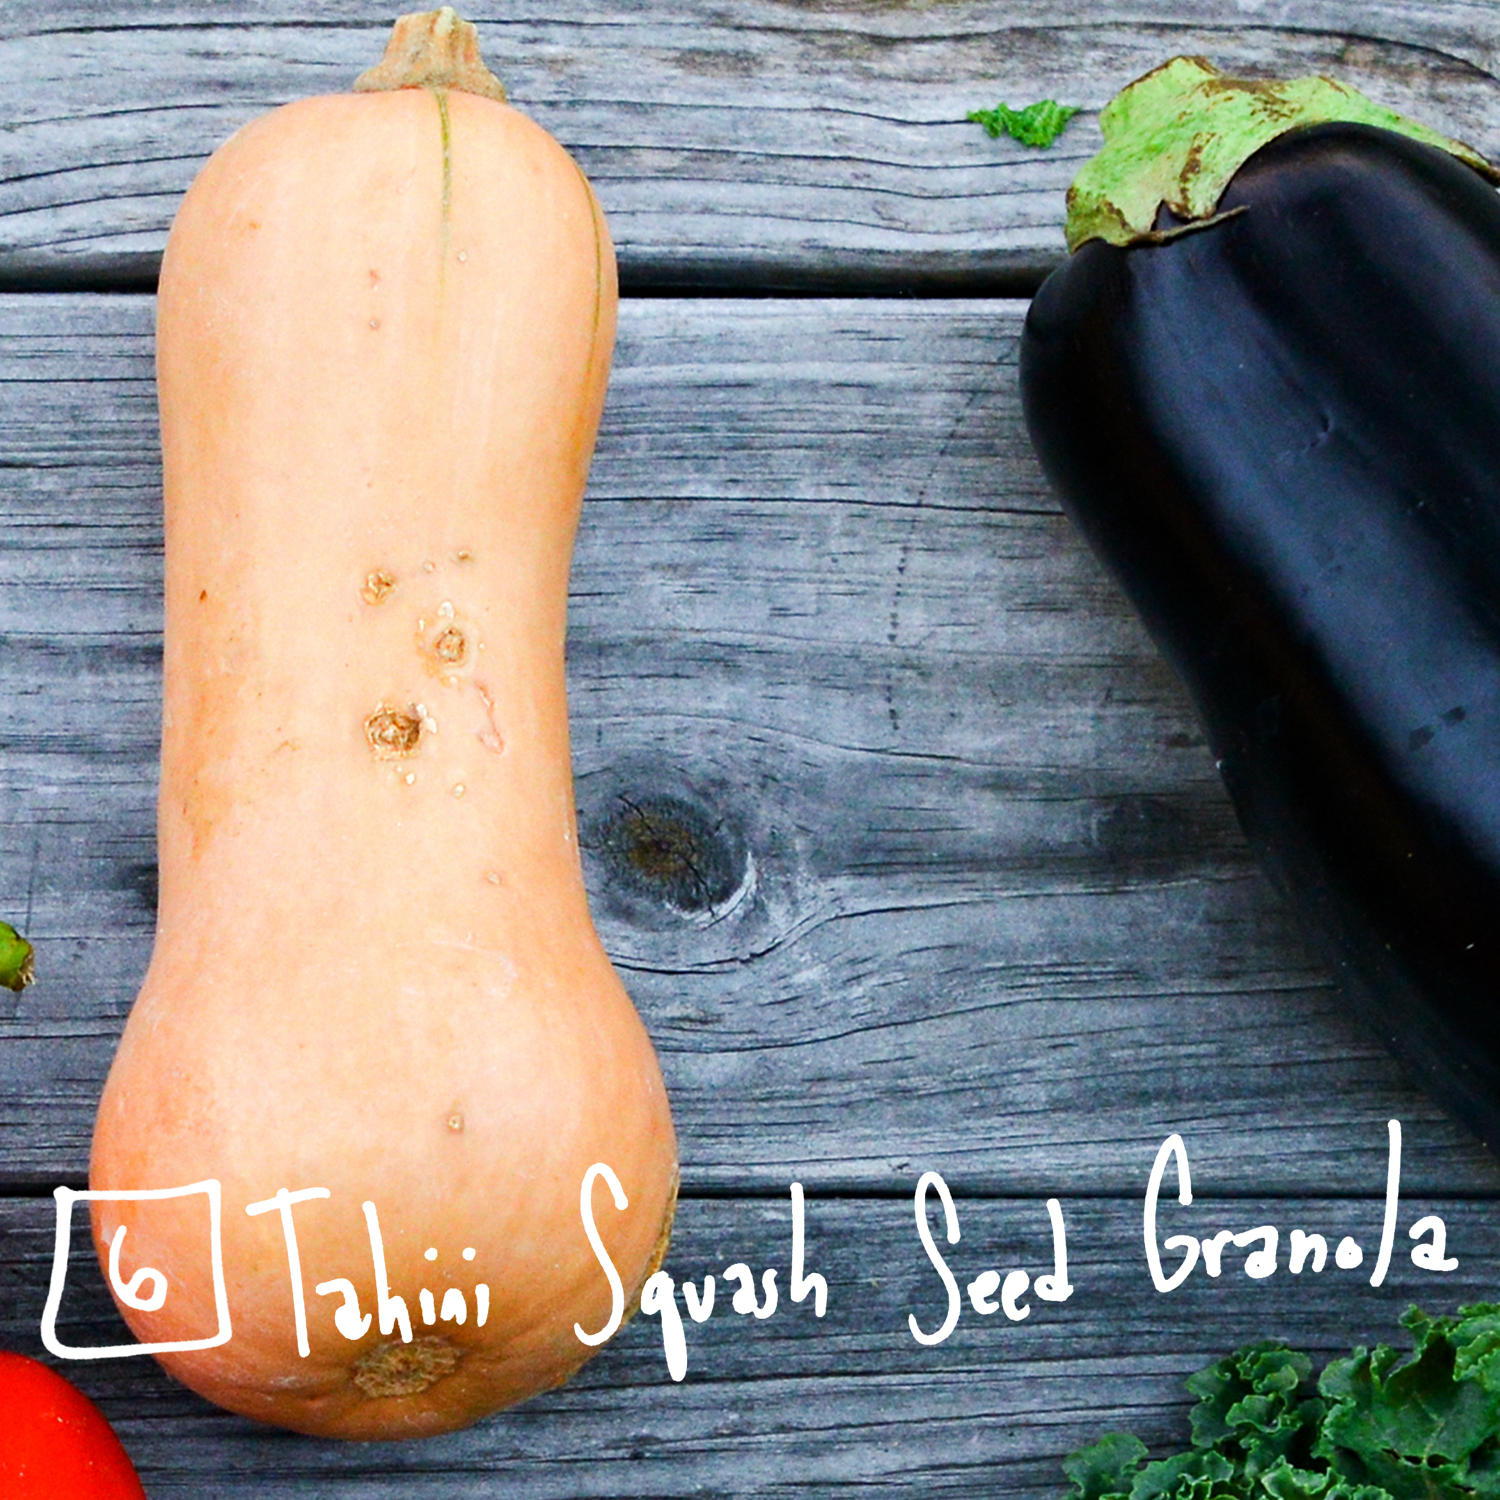 Cook your squash, but save those seeds for this savory snack. - Find the recipe at: Mind Body Green